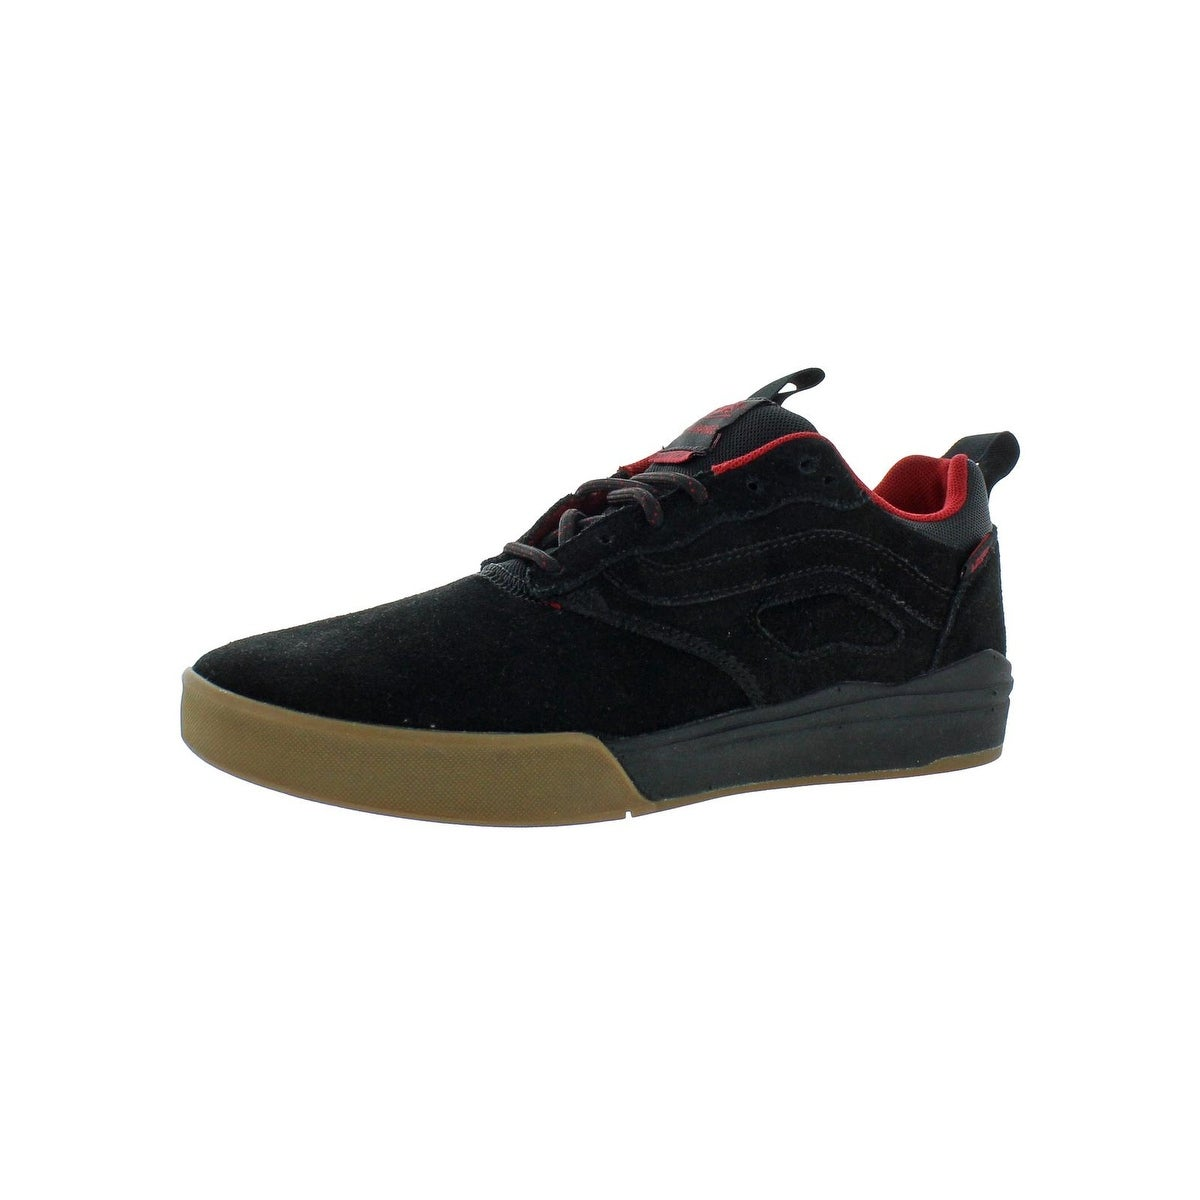 58059838 Black Vans Men's Shoes | Find Great Shoes Deals Shopping at Overstock